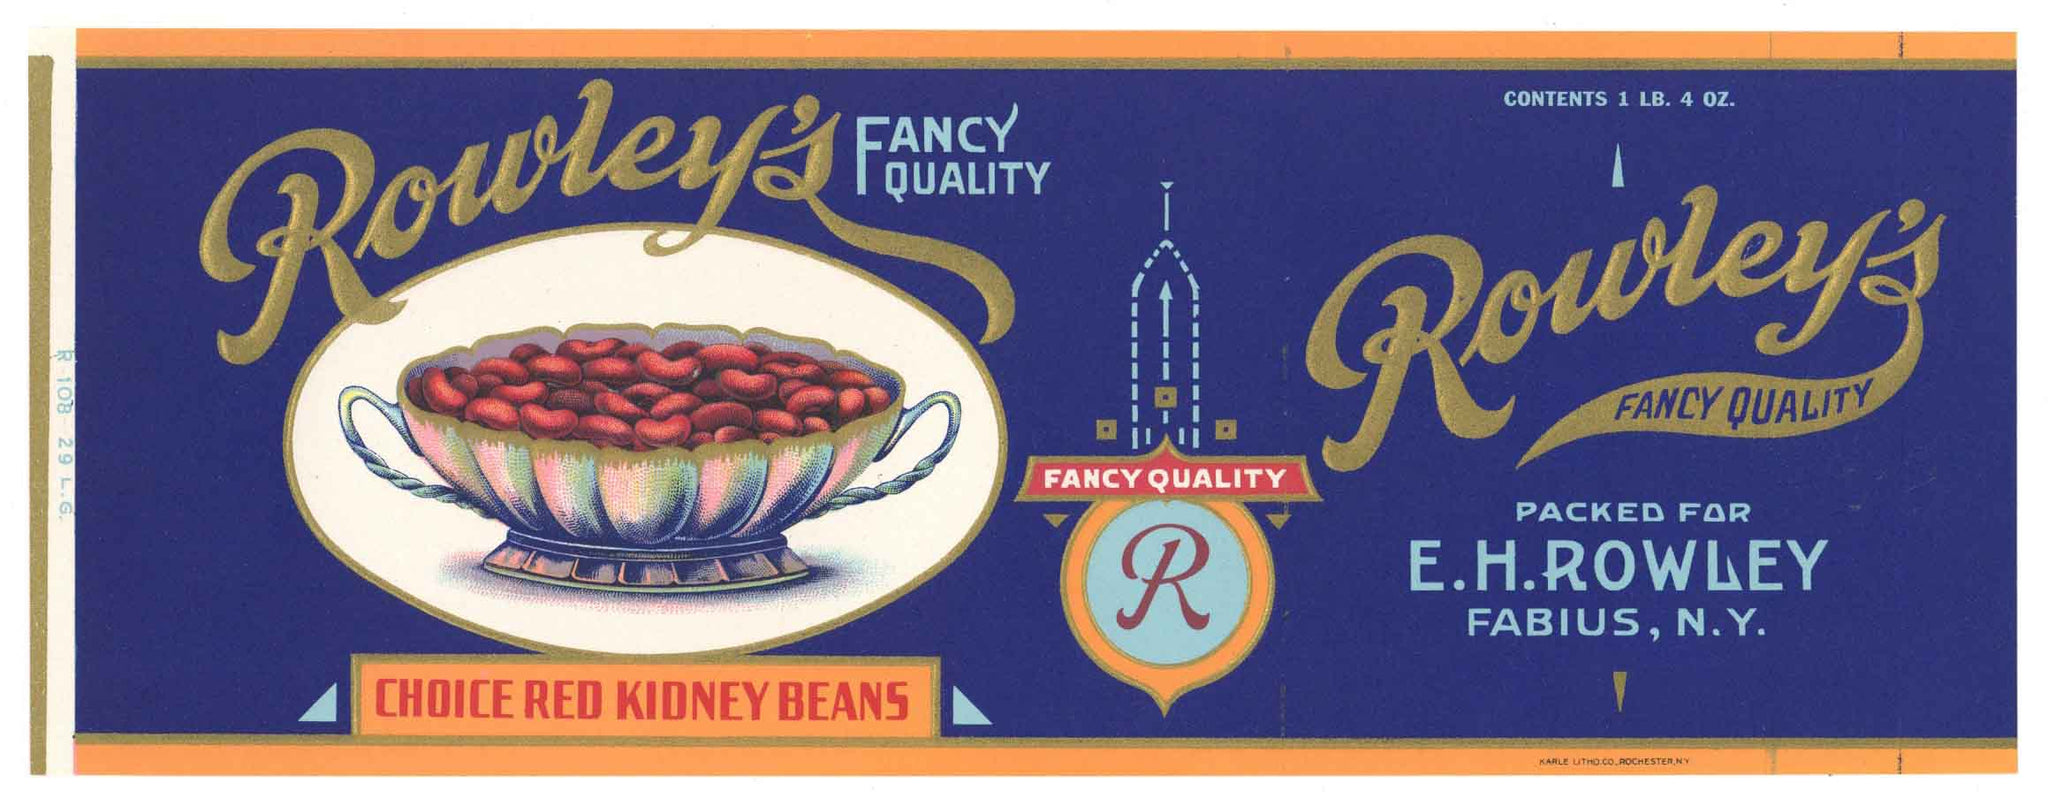 Rowley's Brand Vintage New York Kidney Beans Can Label